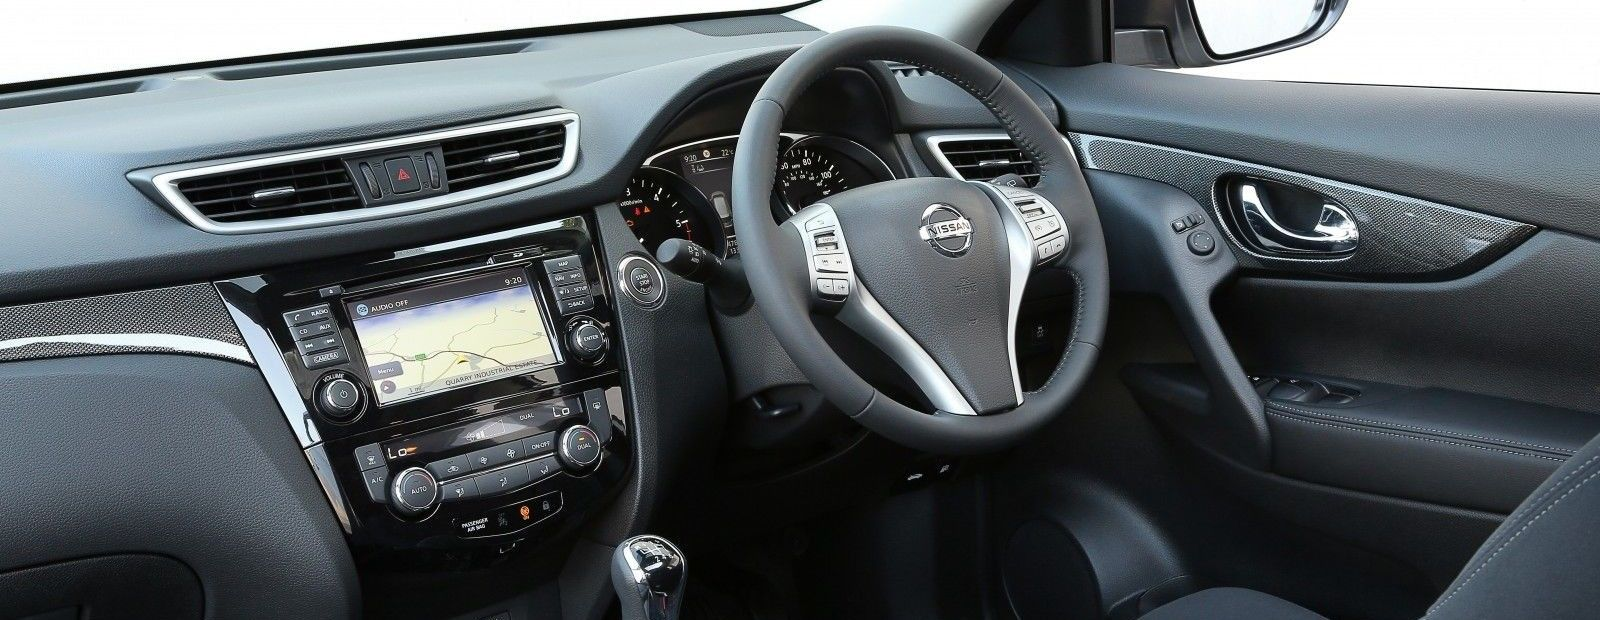 What is nissan n tec trim carwow for Nissan pulsar interior